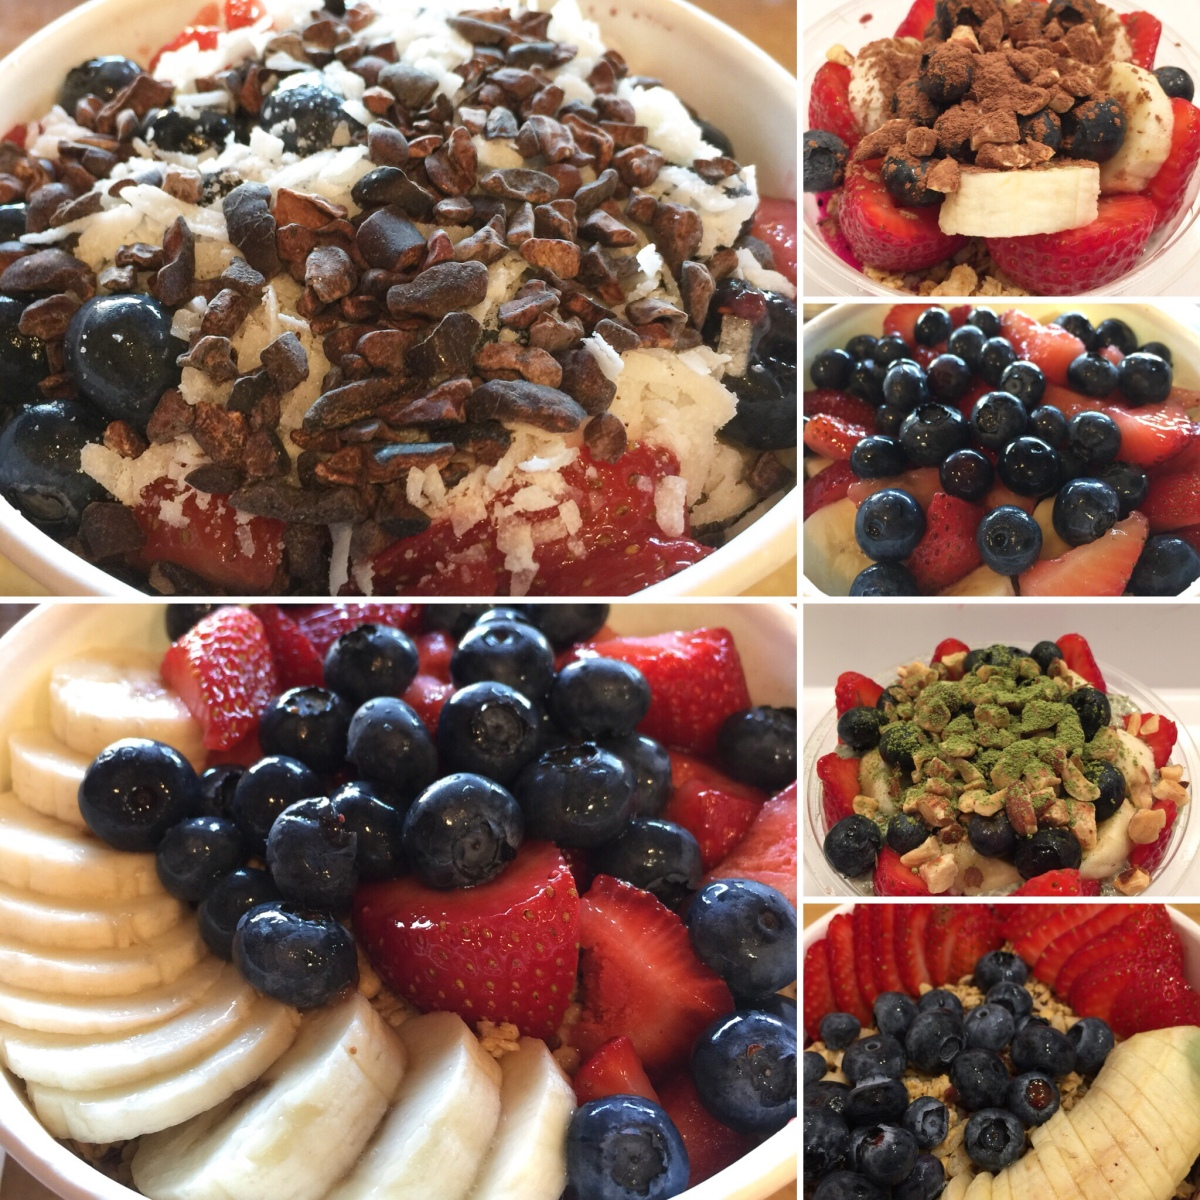 Why I Spent Almost $120 on Acai Bowls Last Month